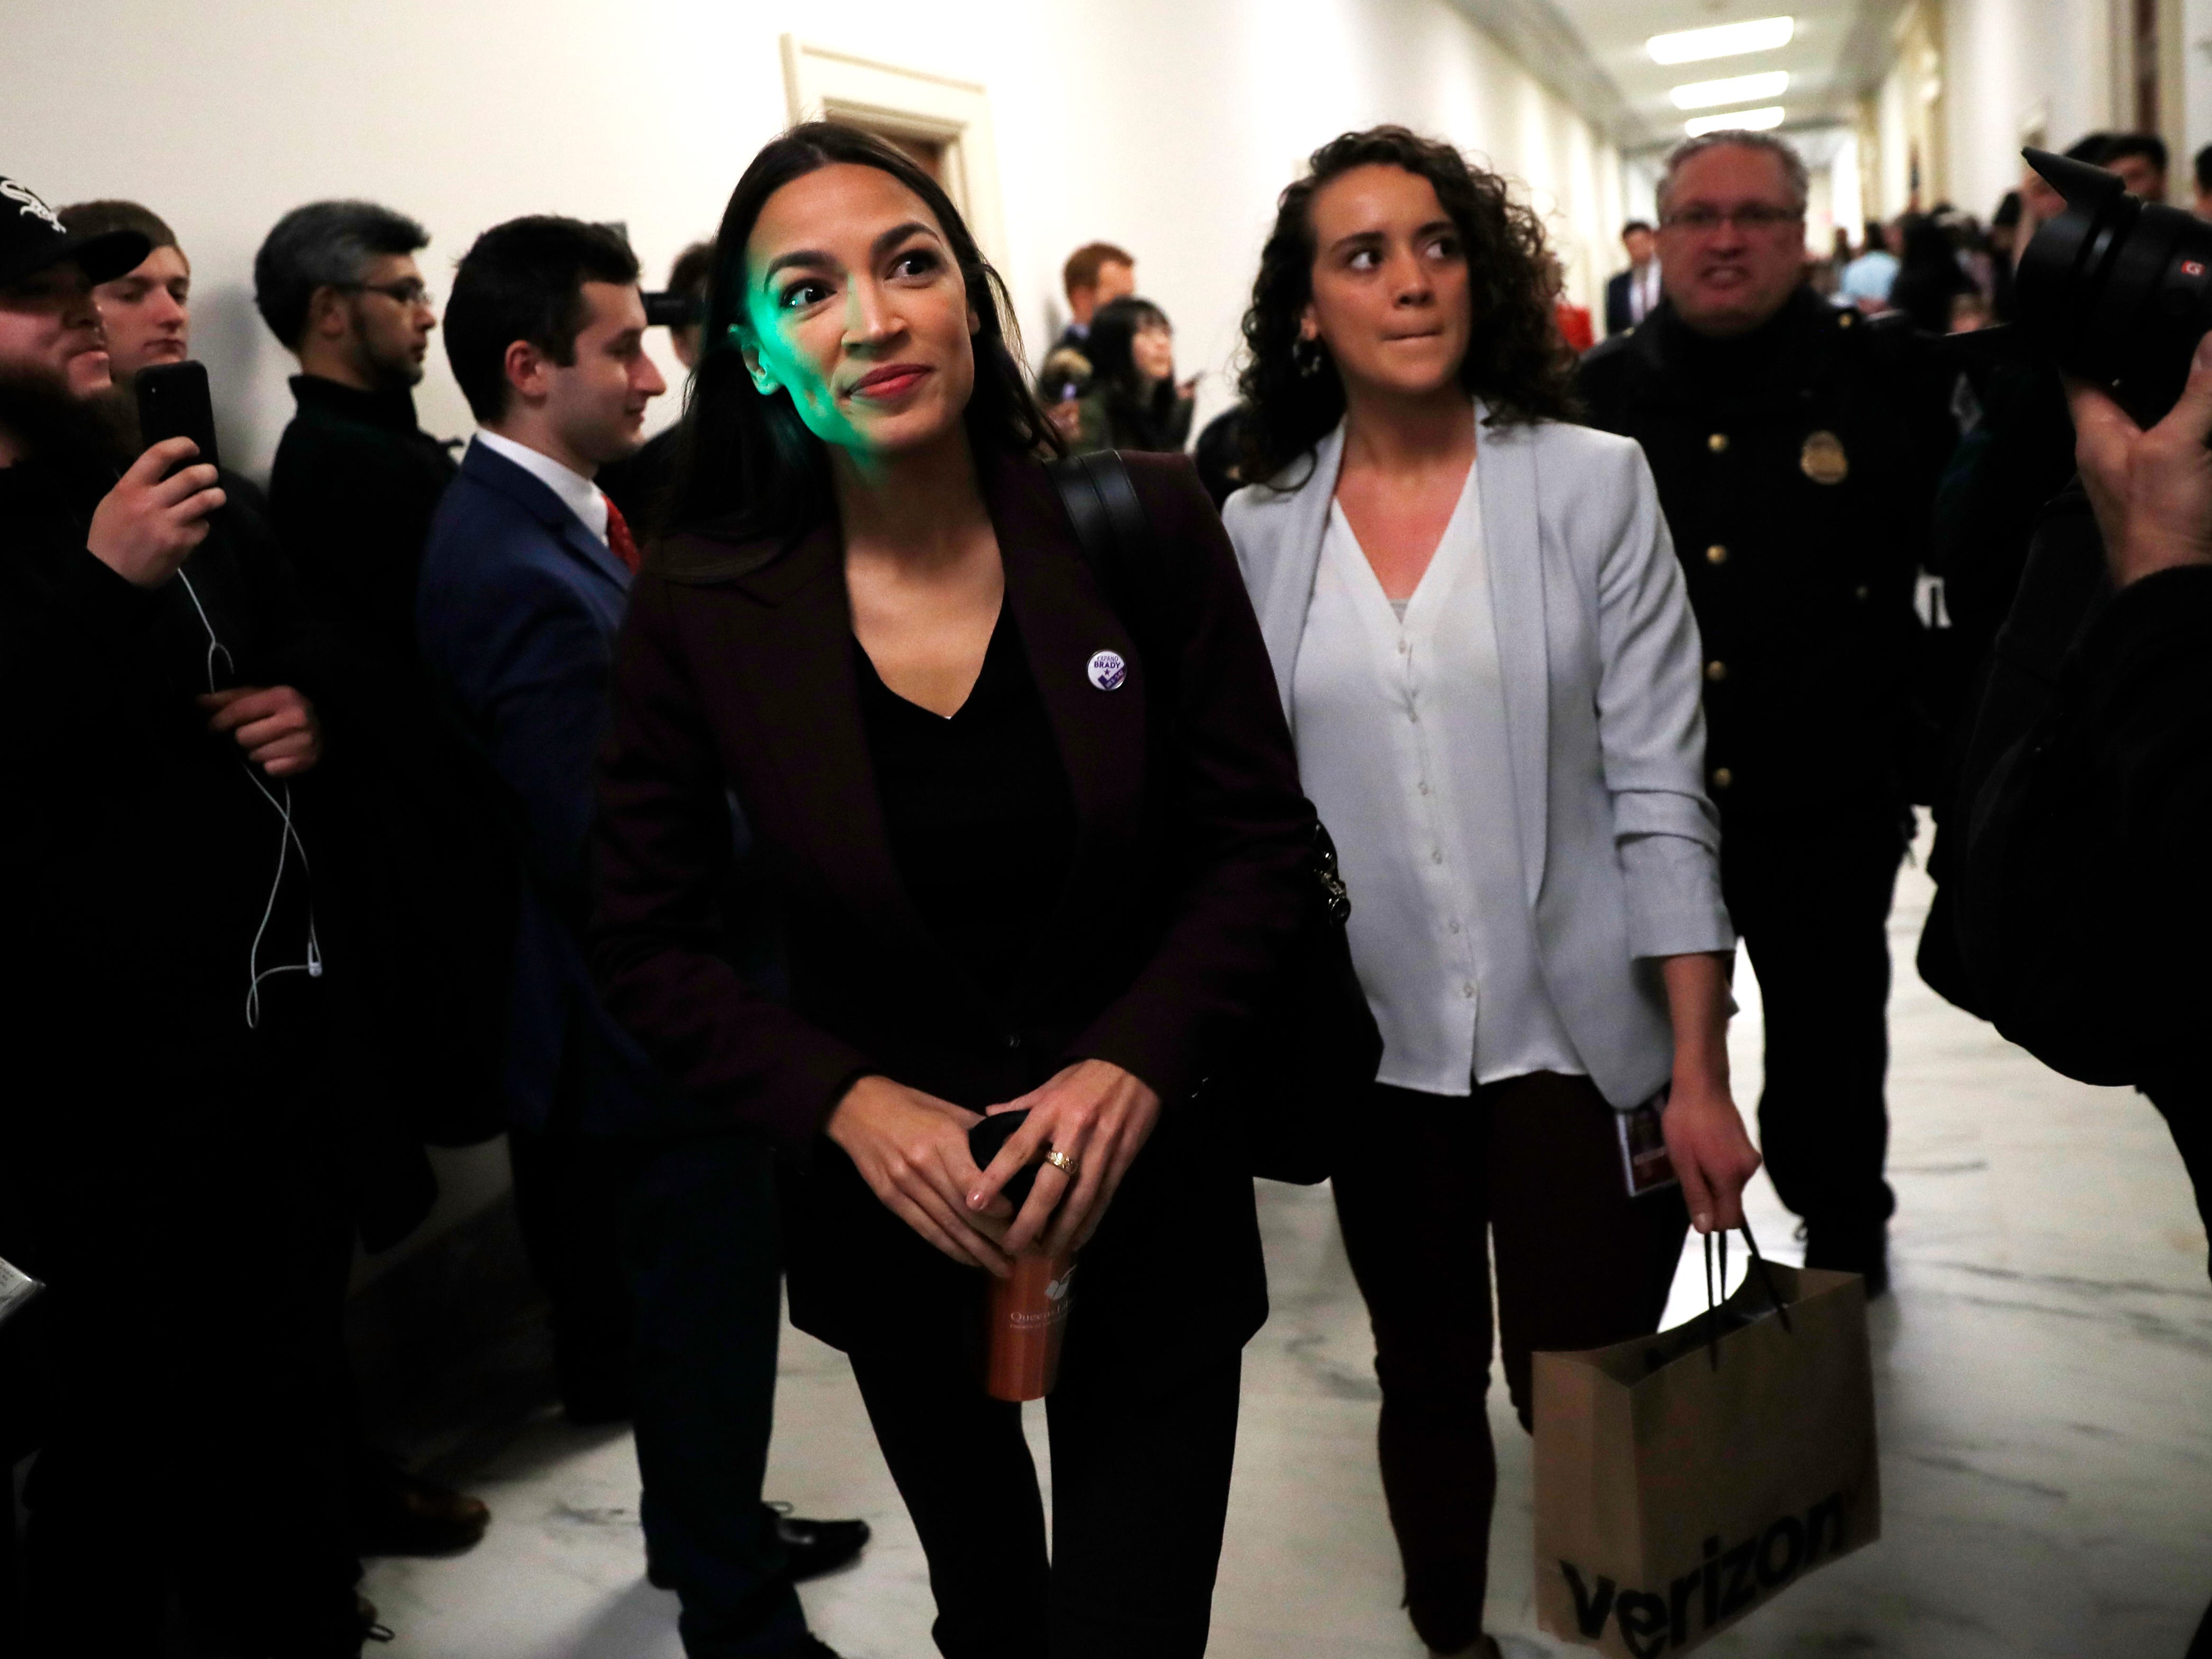 Rep. Alexandria Ocasio-Cortez, D-N.Y.,  arrives to a hearing where Michael Cohen, President Donald Trump's former personal lawyer, will testify before the House Oversight and Reform Committee on Capitol Hill in Washington, Wednesday, Feb. 27, 2019. Ocasio-Cortez sits on the committee.